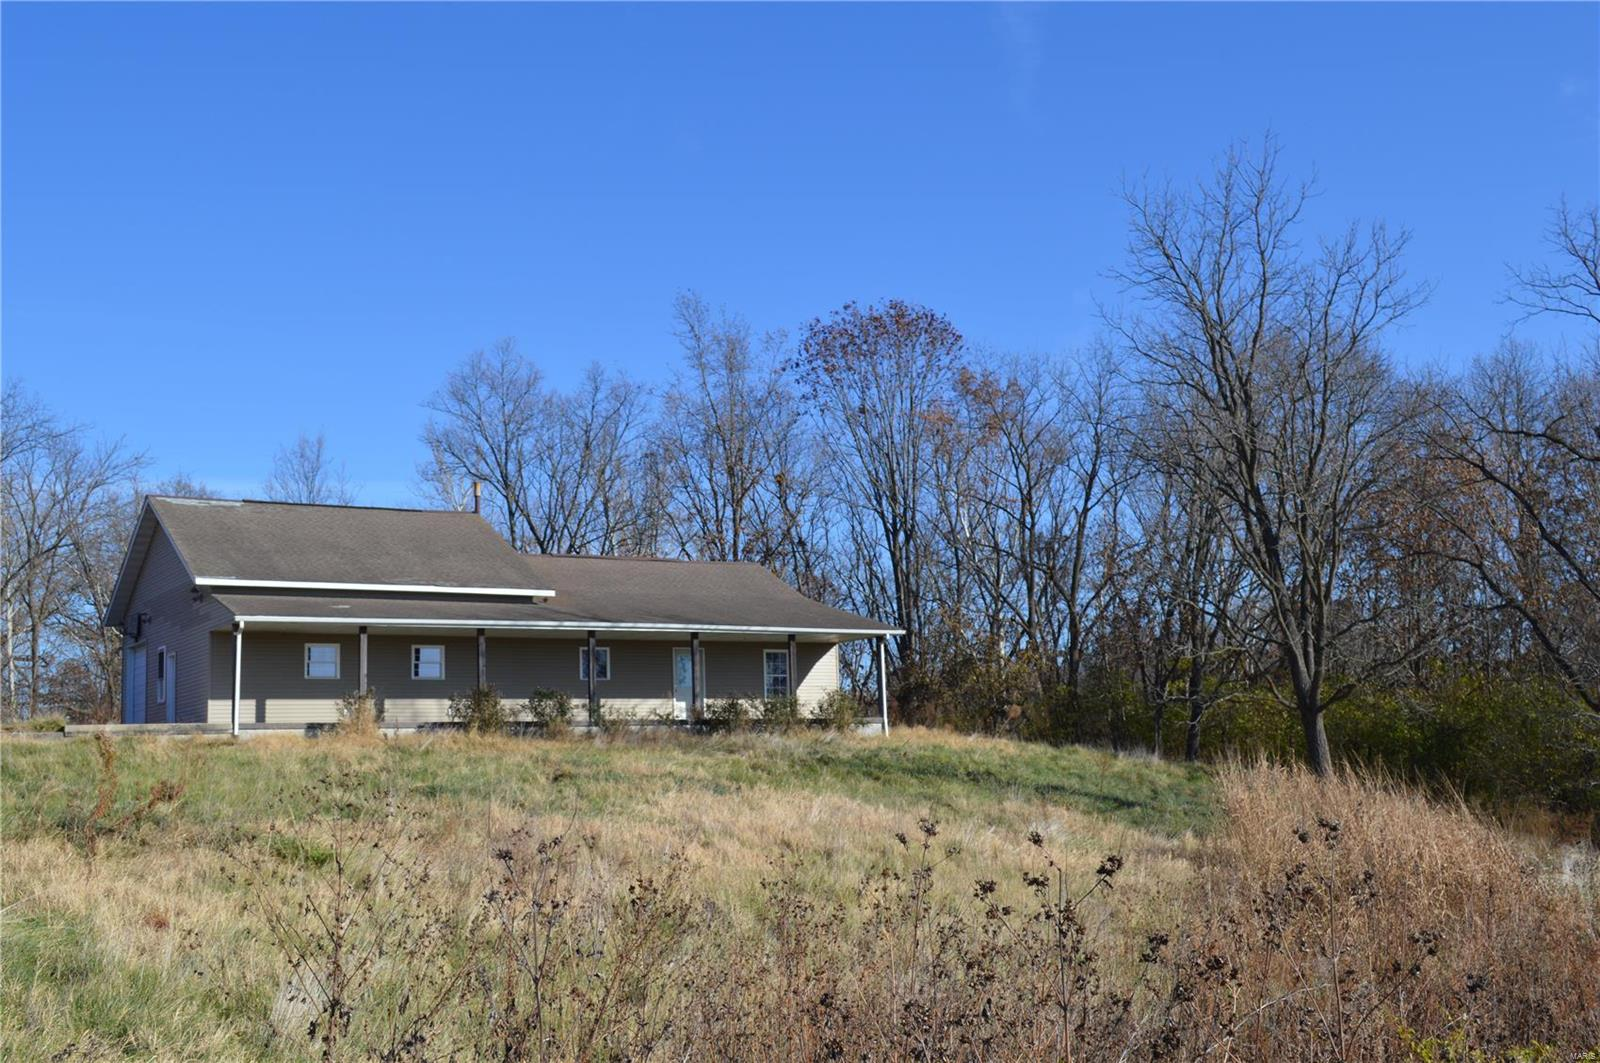 202 E CEMETERY Road Property Photo - Carrollton, IL real estate listing